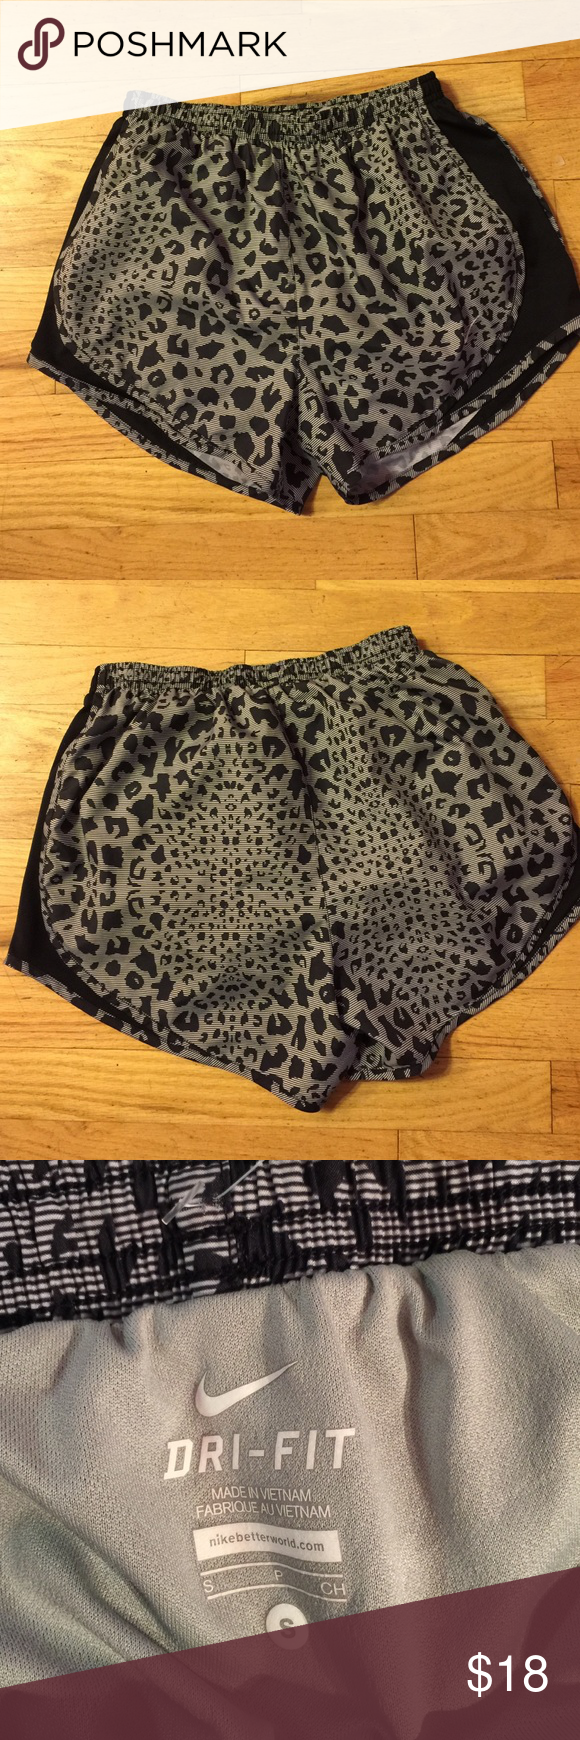 Nike s animal print DriFit shorts. Nike s animal print DriFit shorts. In like new clean condition. Has the inner underpants and tie at the waist. No trades Nike Shorts